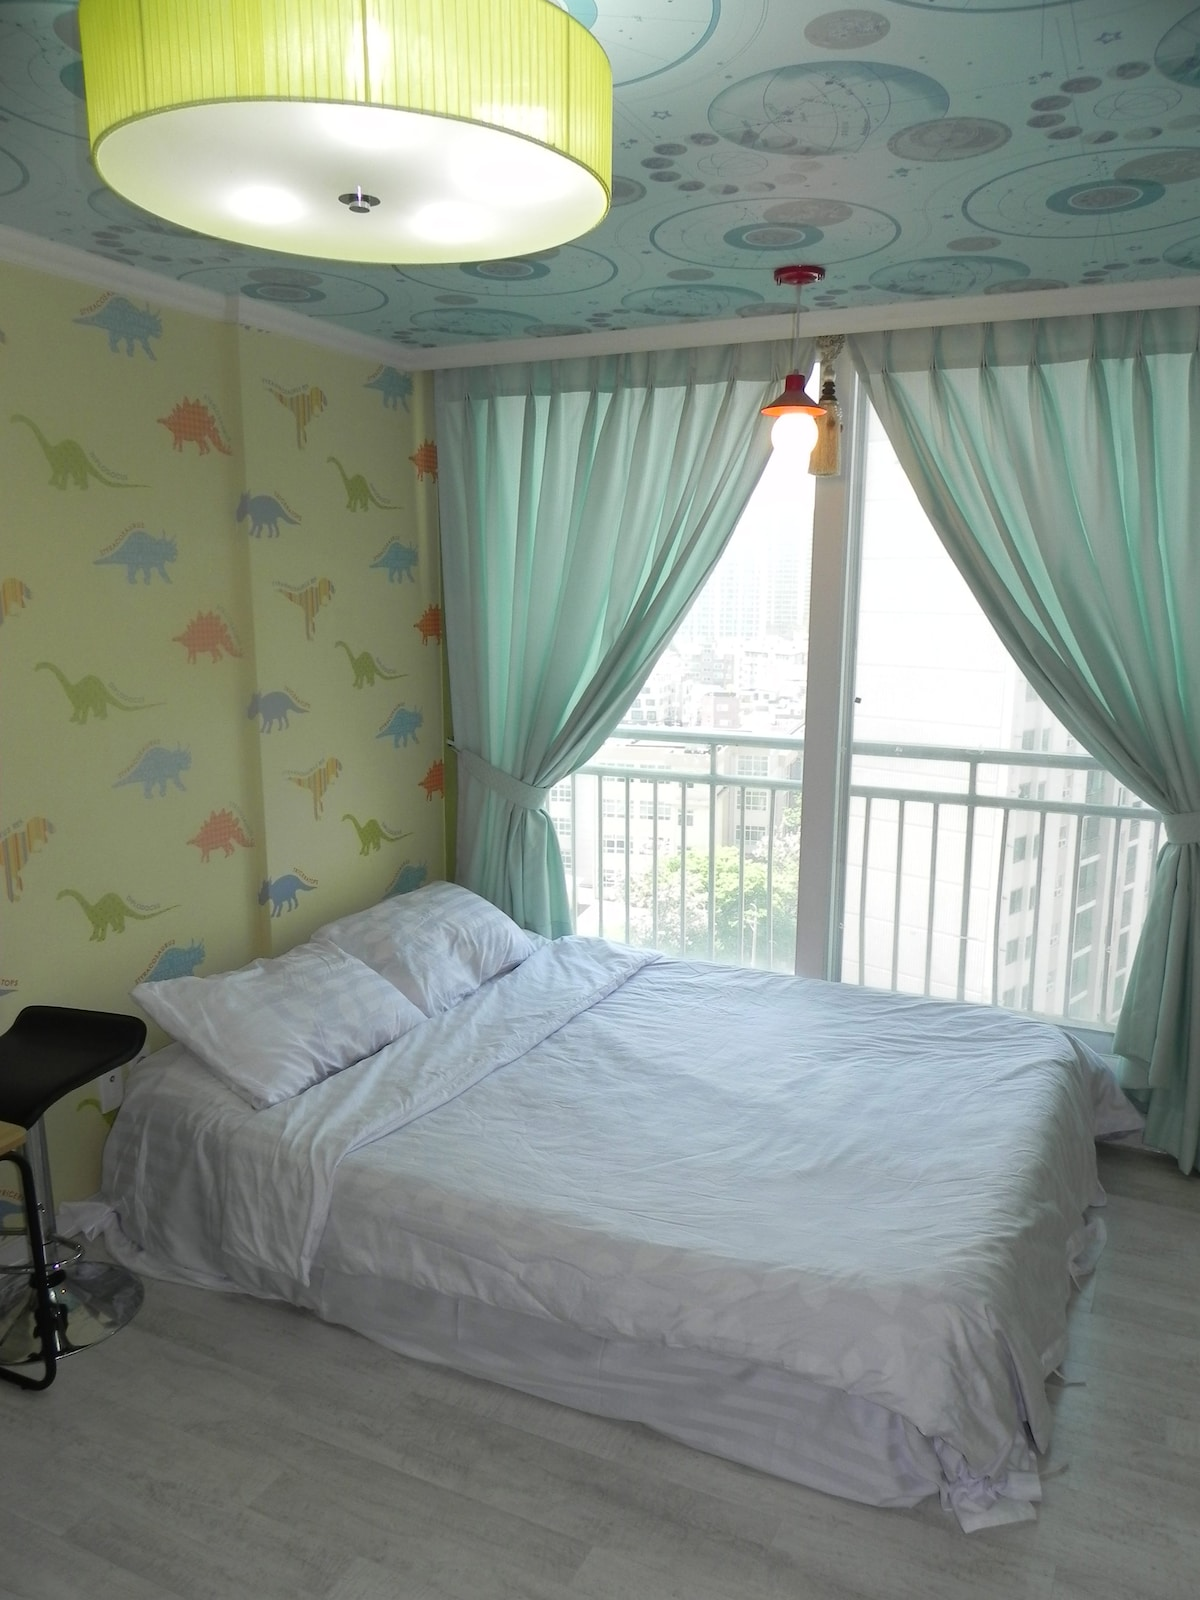 Cosy house - 2 bed room